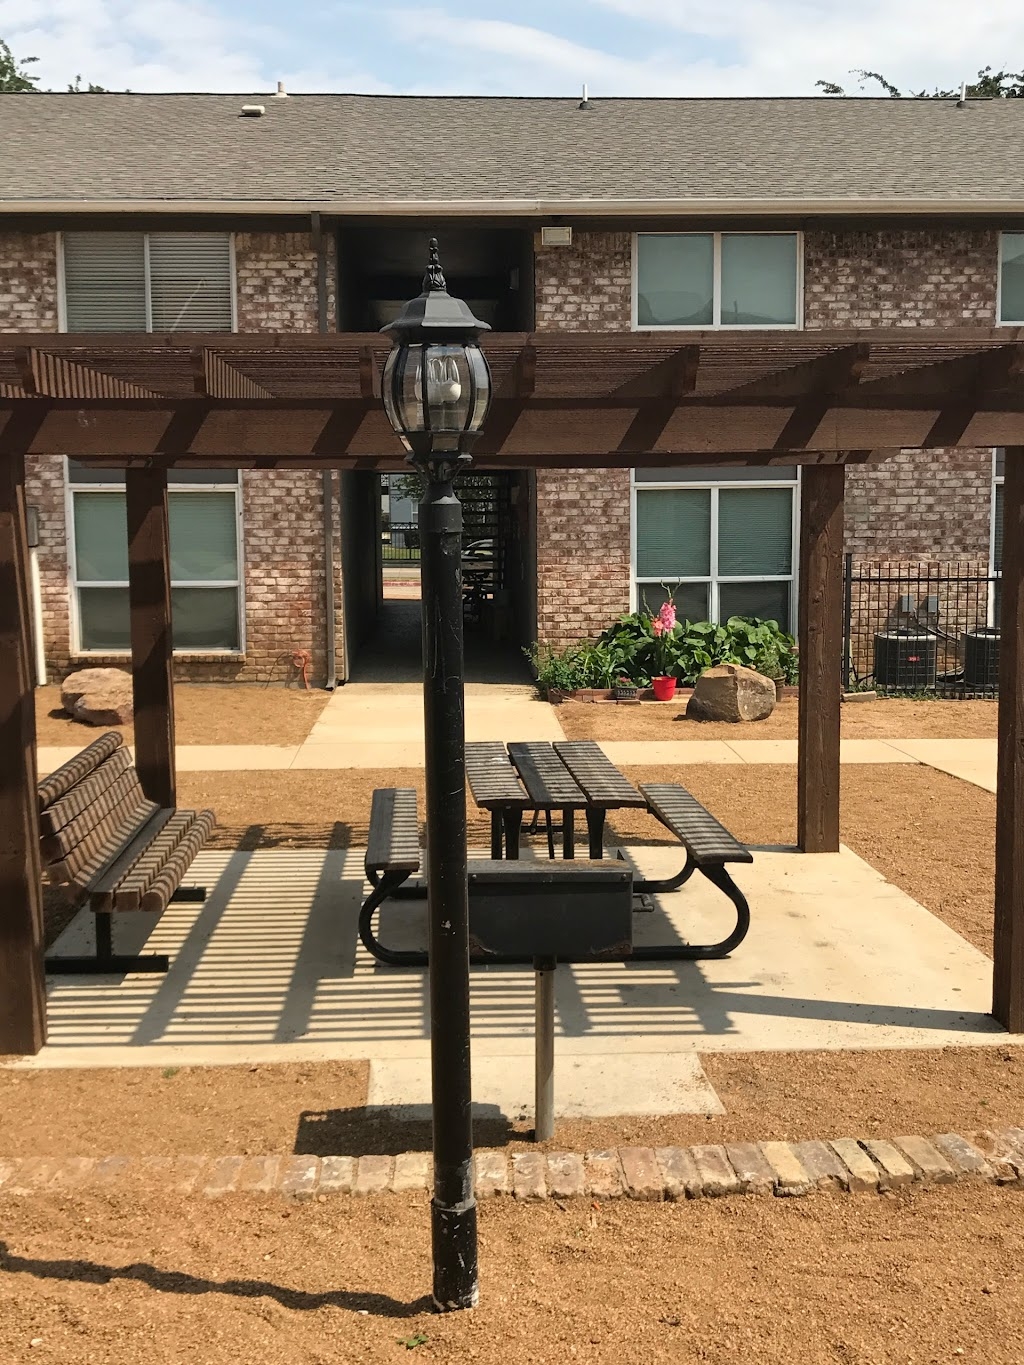 Ridge Crest Apartments - real estate agency  | Photo 5 of 10 | Address: 2805 Mustang Dr, Grapevine, TX 76051, USA | Phone: (817) 714-3043